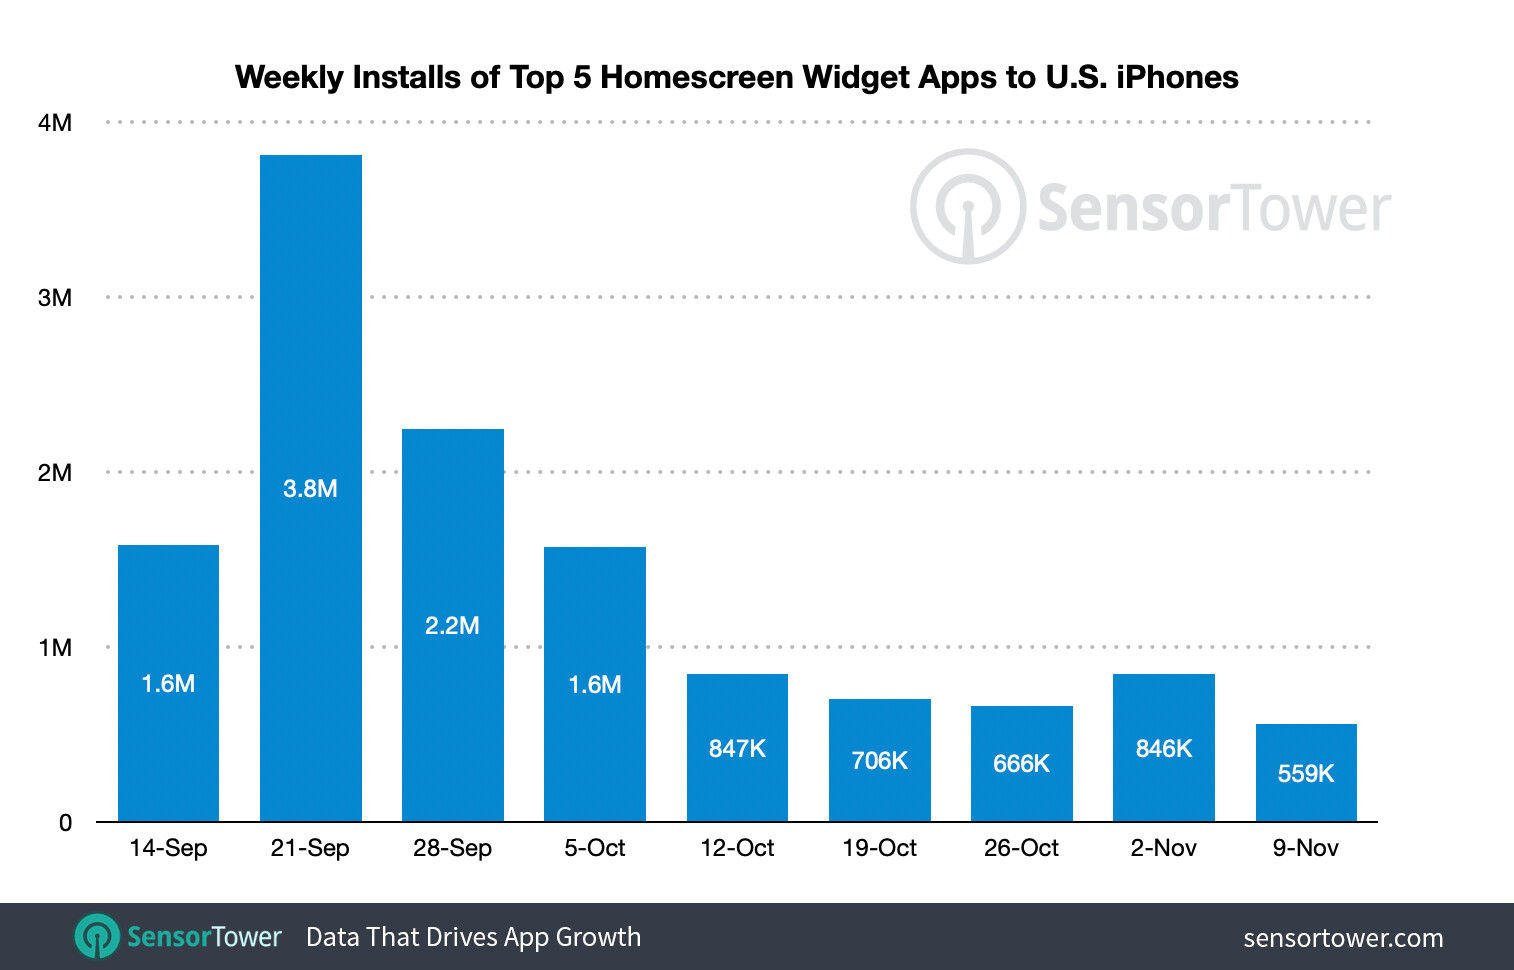 Collective installs of the five most popular widget apps for iOS 14 - These iOS 14 widget apps have already been installed on 15% of US iPhones since iOS 14 launch